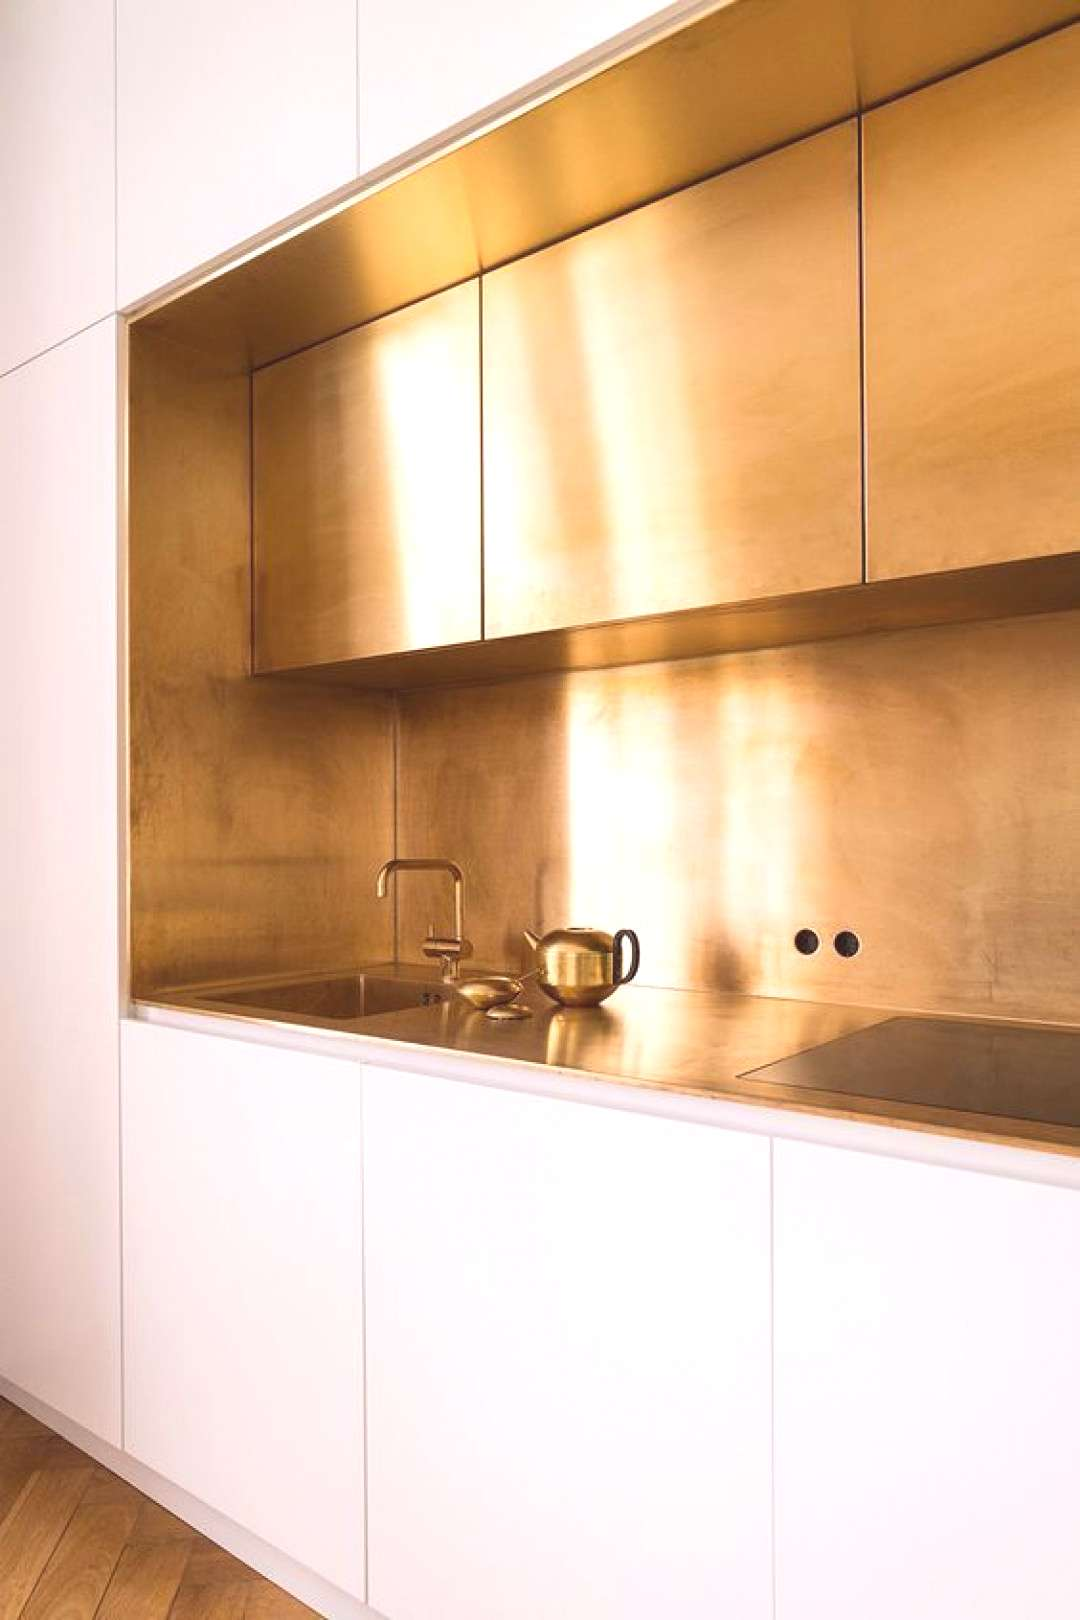 12x the most beautiful kitchens with gold-colored accents - 12x de mooiste keukens met goudkleurige